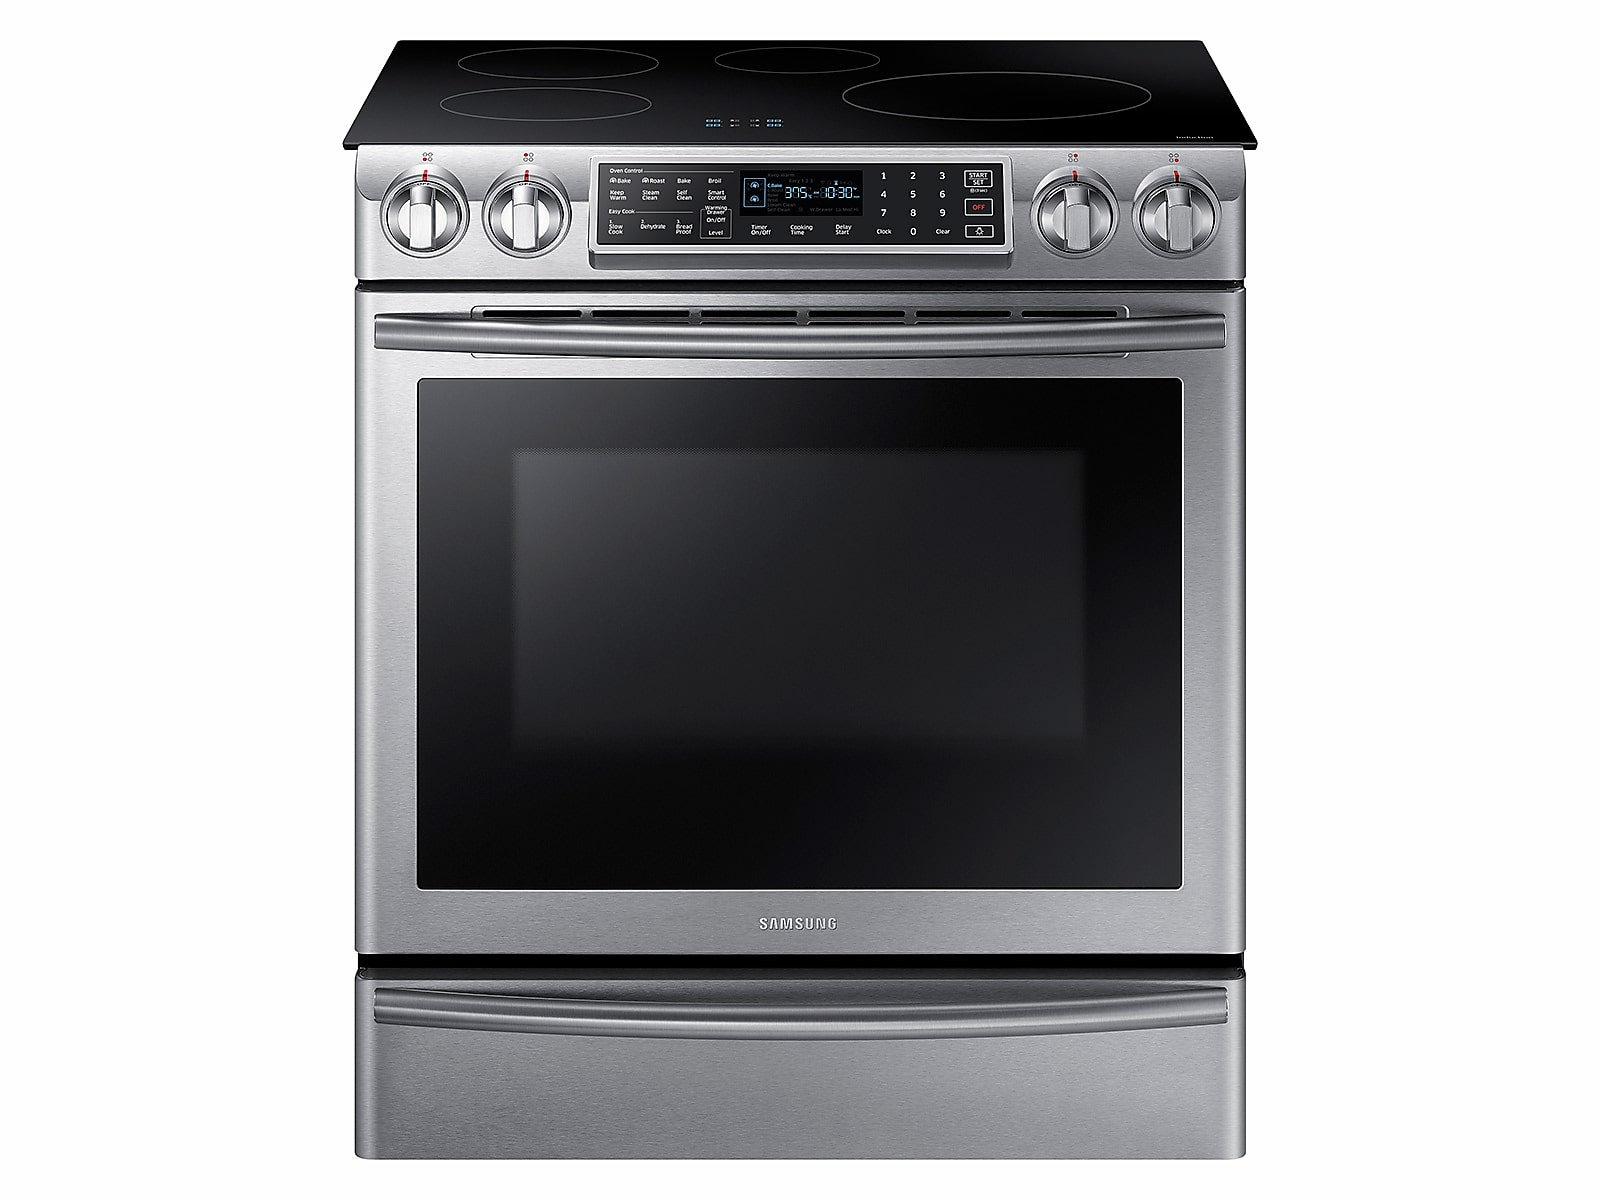 Samsung 5.8 cu. ft. Slide-induction Range with Virtual Flame™ in Stainless Steel(NE58K9560WS/AA)